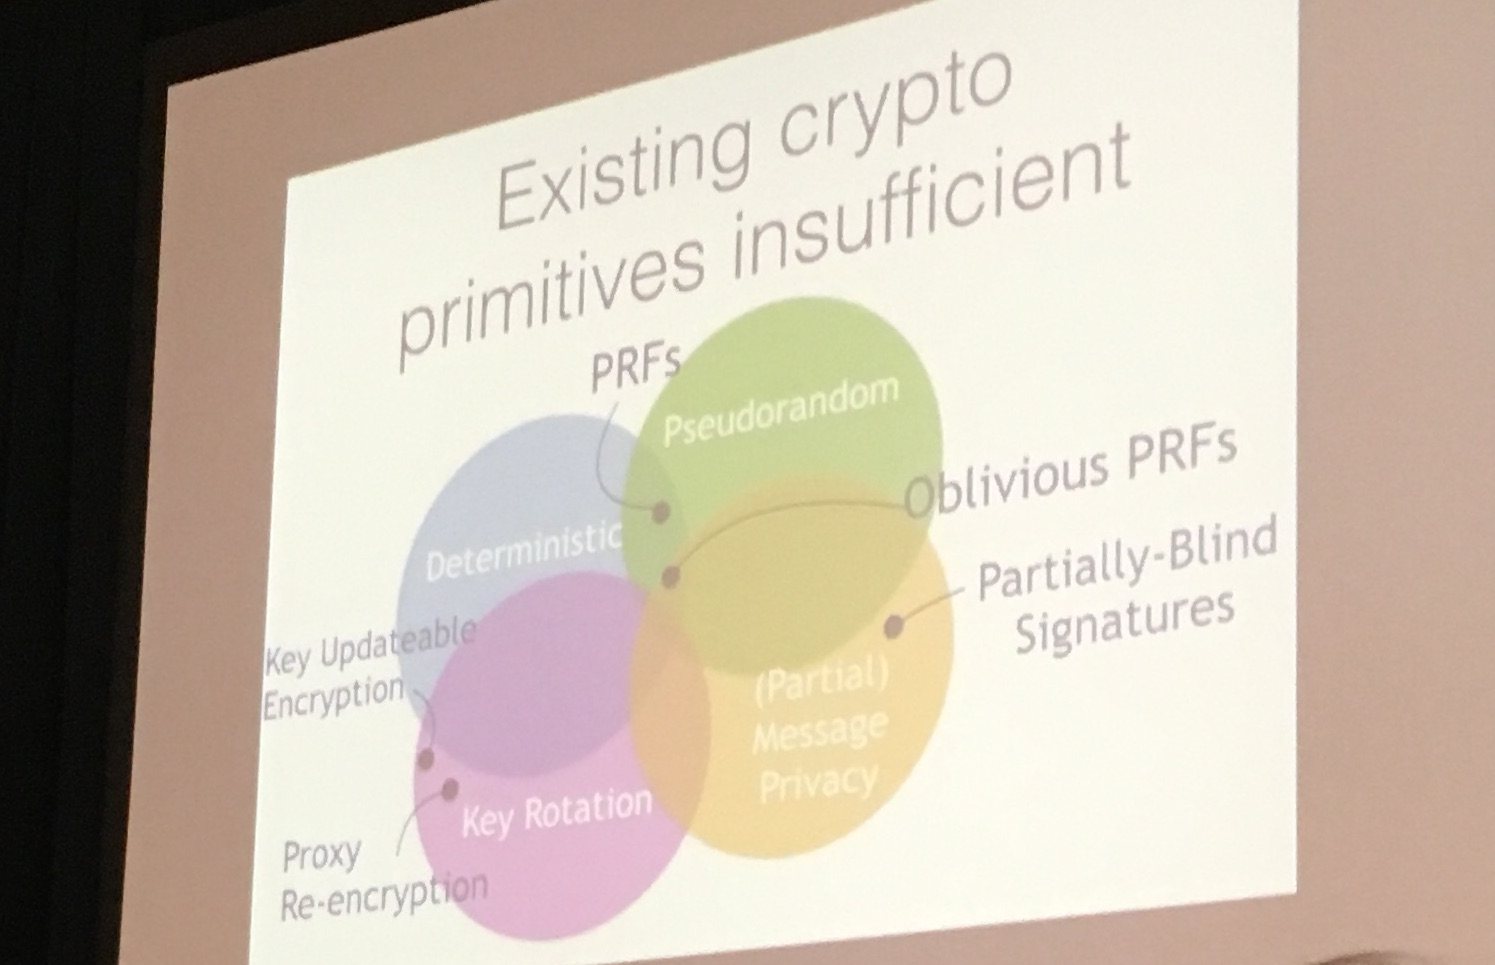 existing crypto primitives insufficient